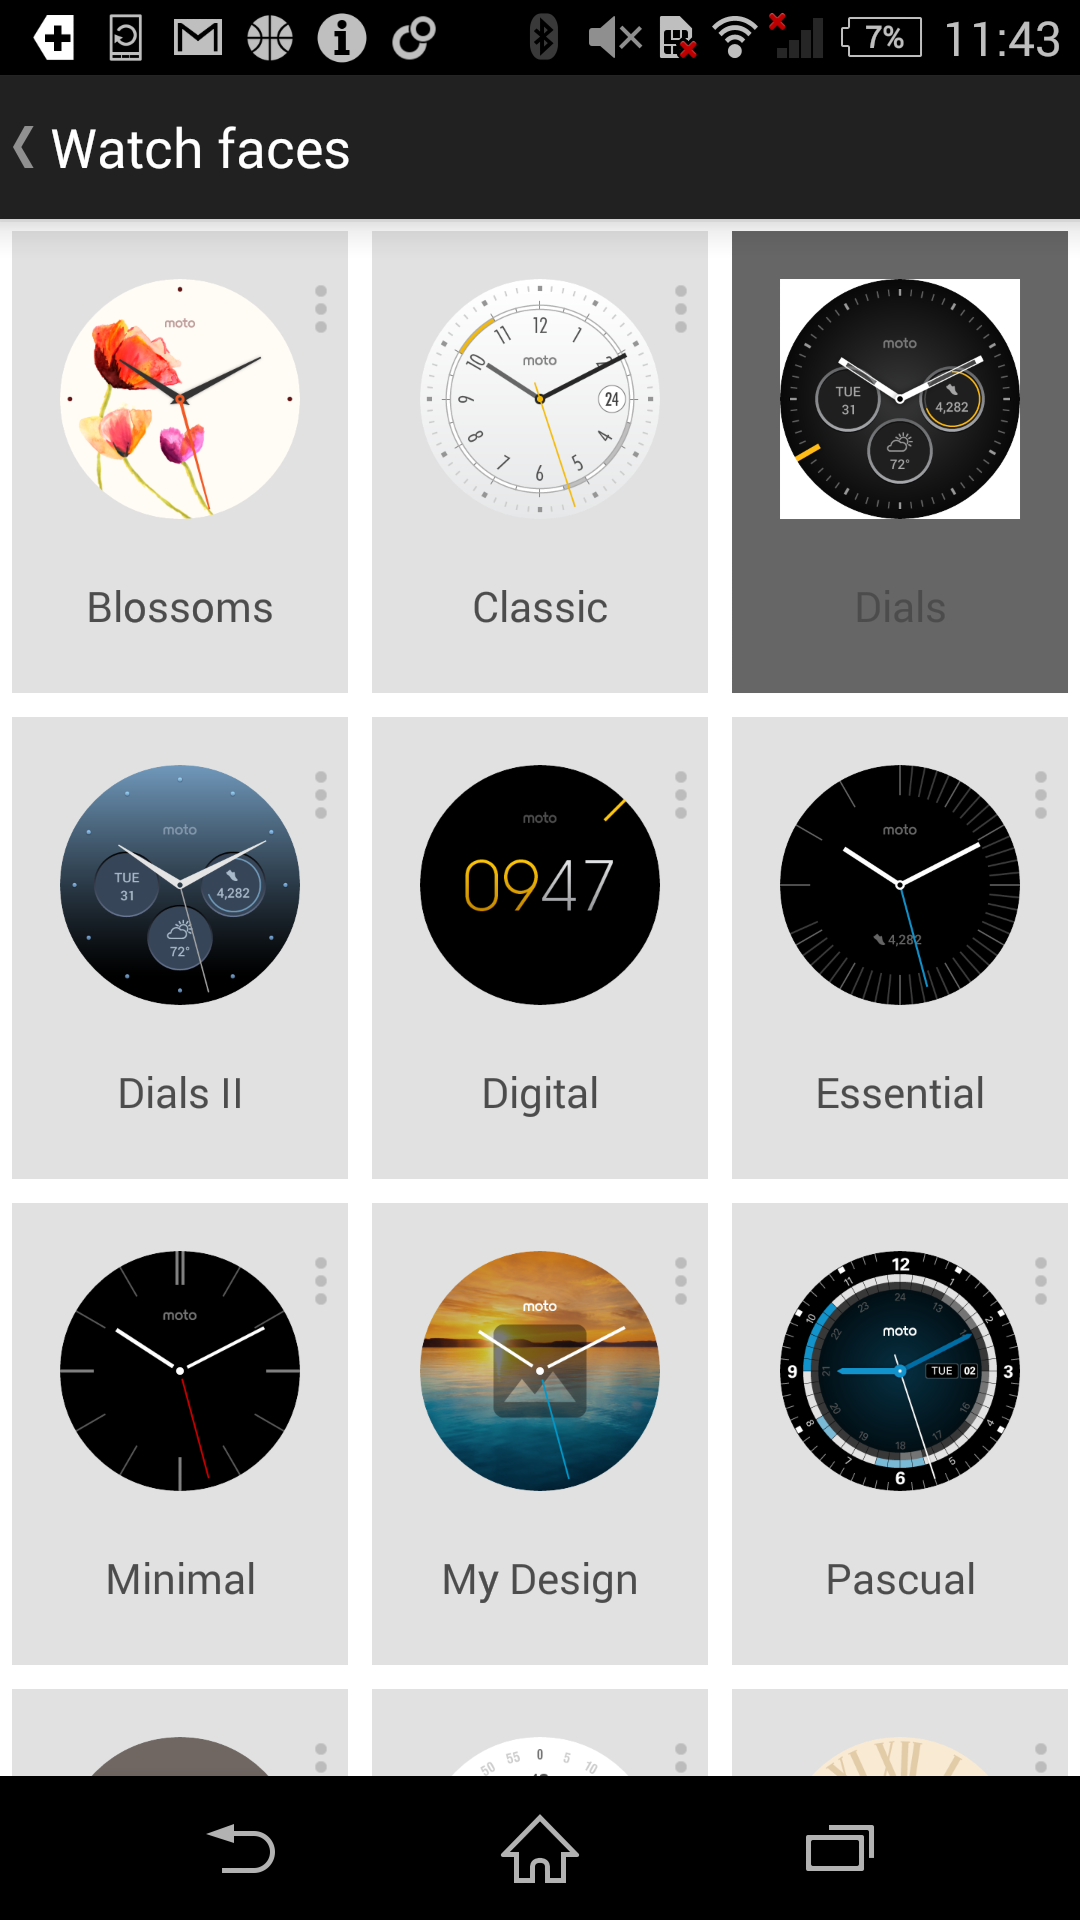 You get some new watch faces with built in widgets on the new Moto 360 (although they're now also made available to last year's model).